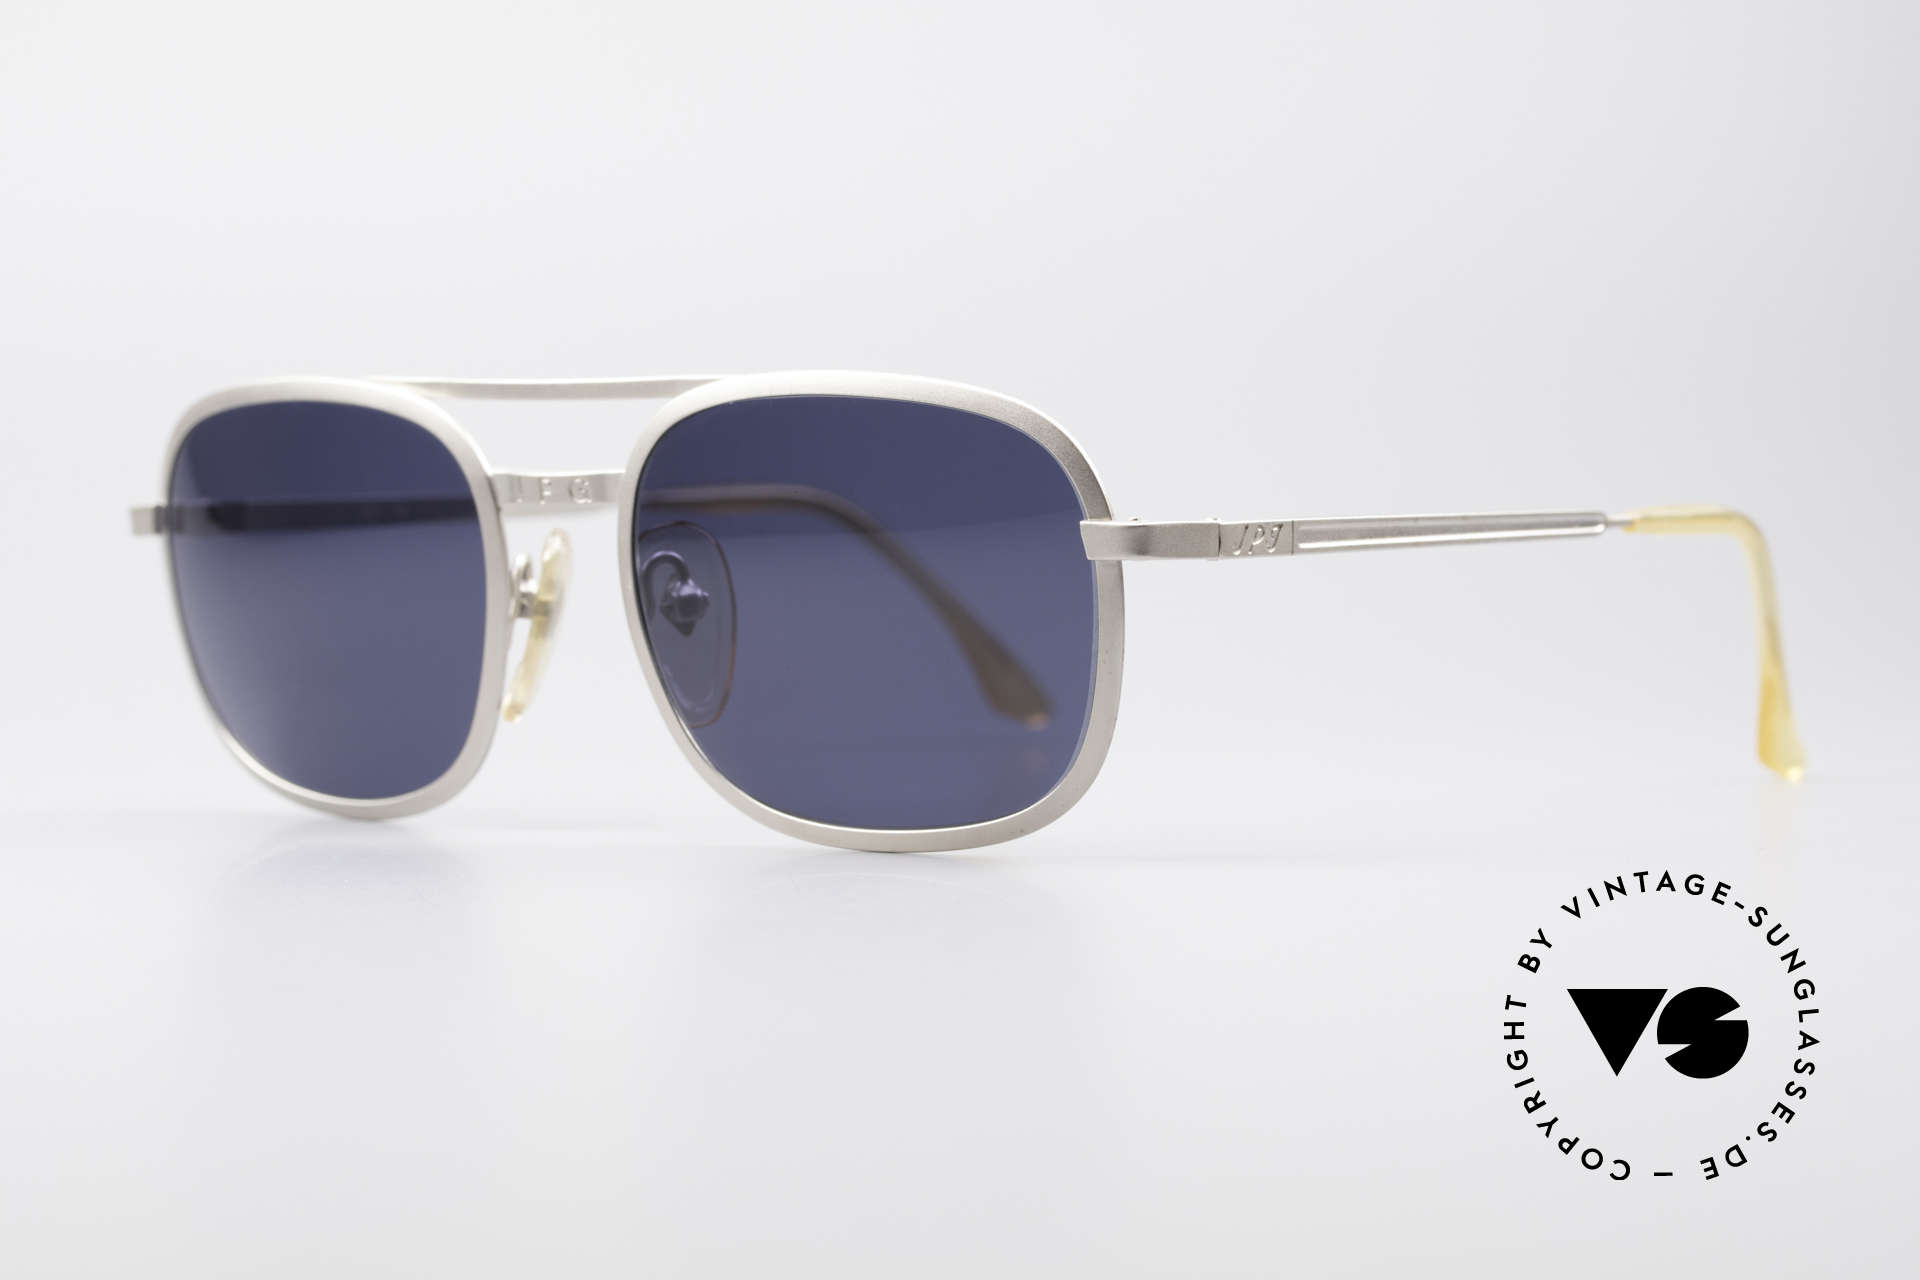 Jean Paul Gaultier 56-1172 Classic Timeless Sunglasses, flexible spring hinges for a 1st class wearing comfort, Made for Men